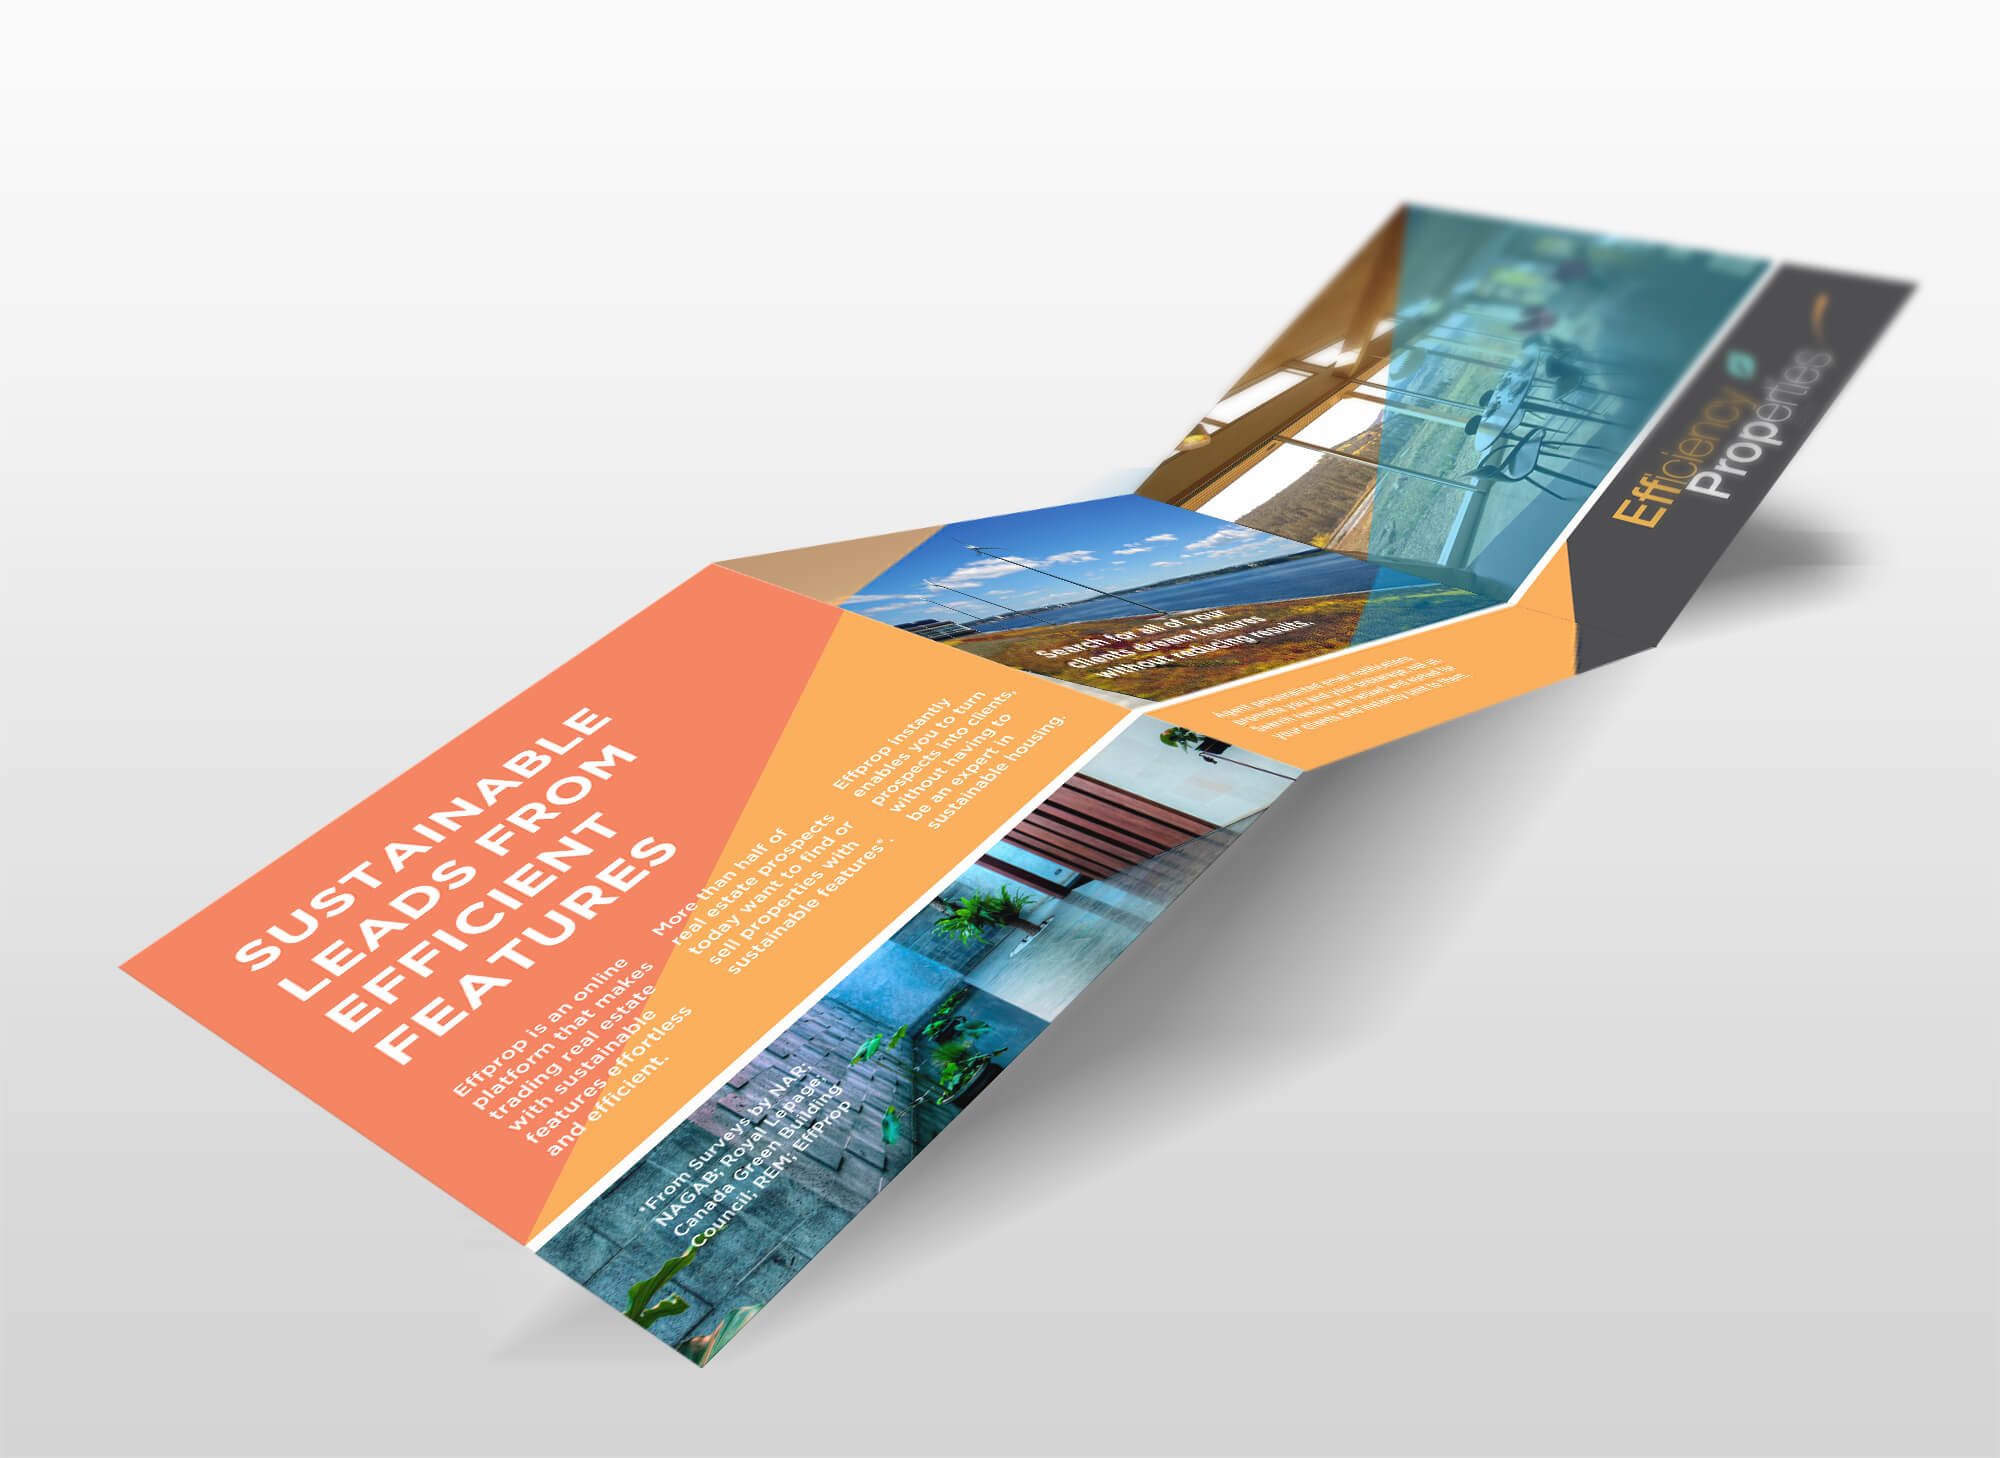 Efficiency Properties Halifax, Brochure Design by Pivot